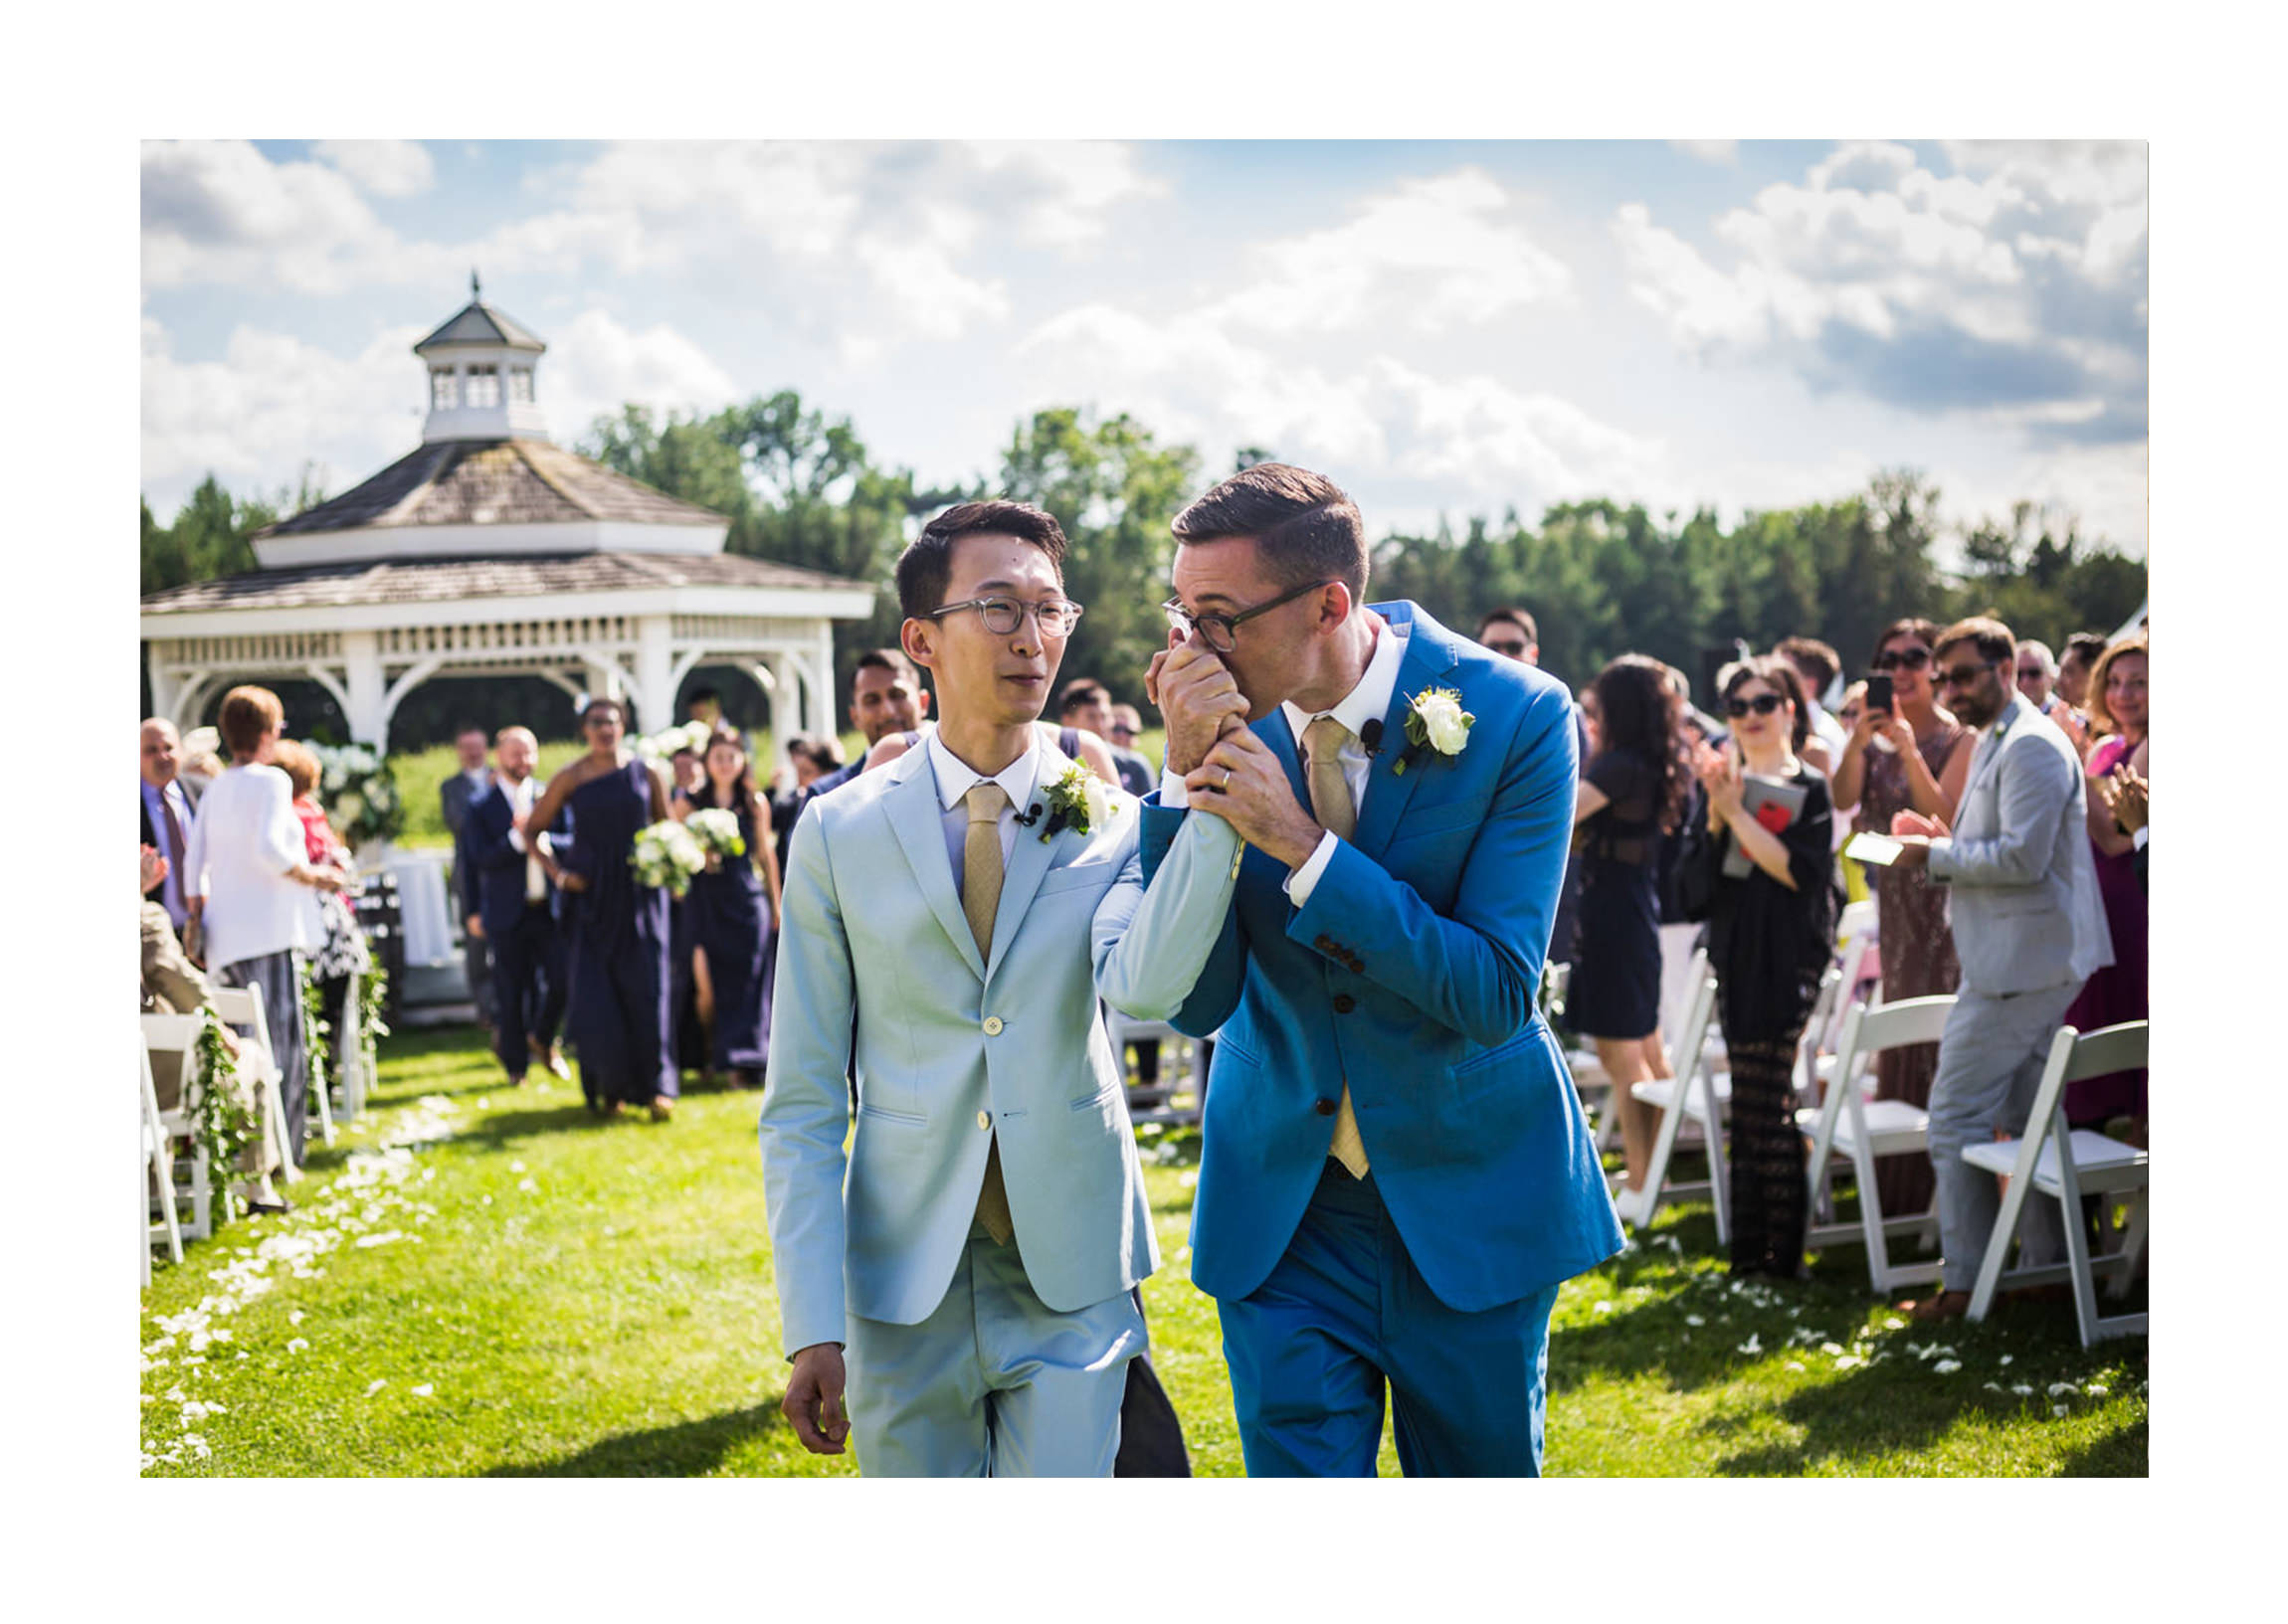 VANCOUVER LGBTQ+ WEDDING PHOTOGRAPHER – JOHN BELLO